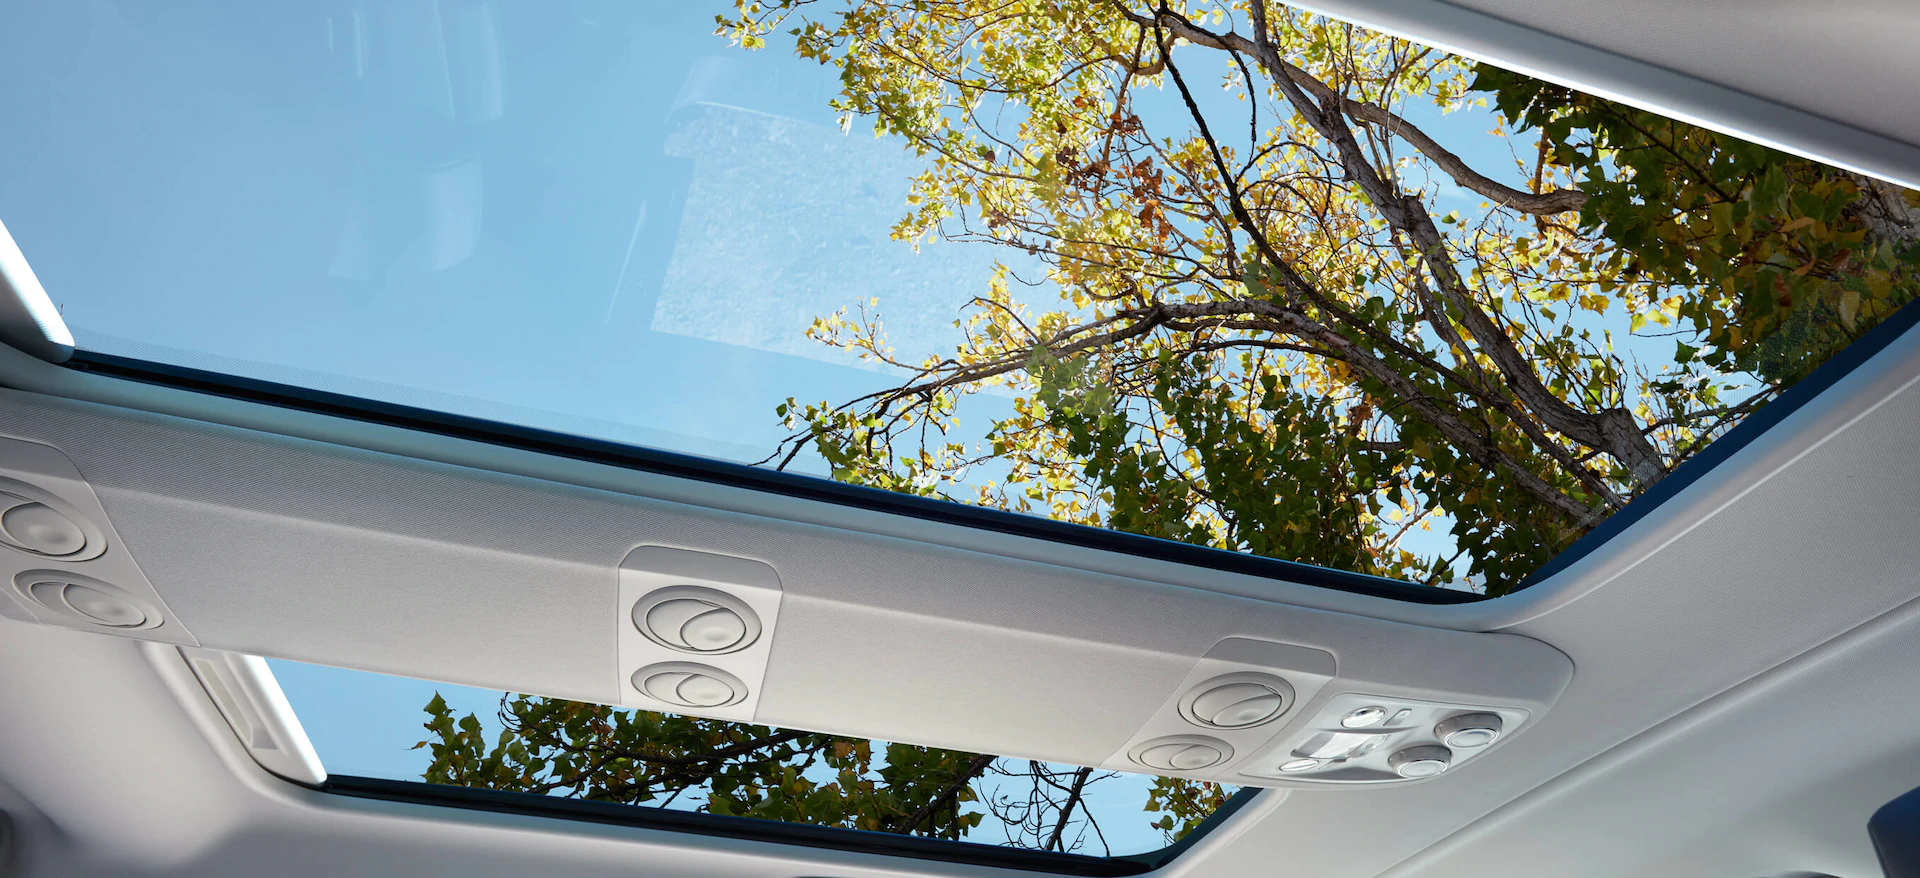 opel_zafira_life_panoramic_sunroof_21x9_